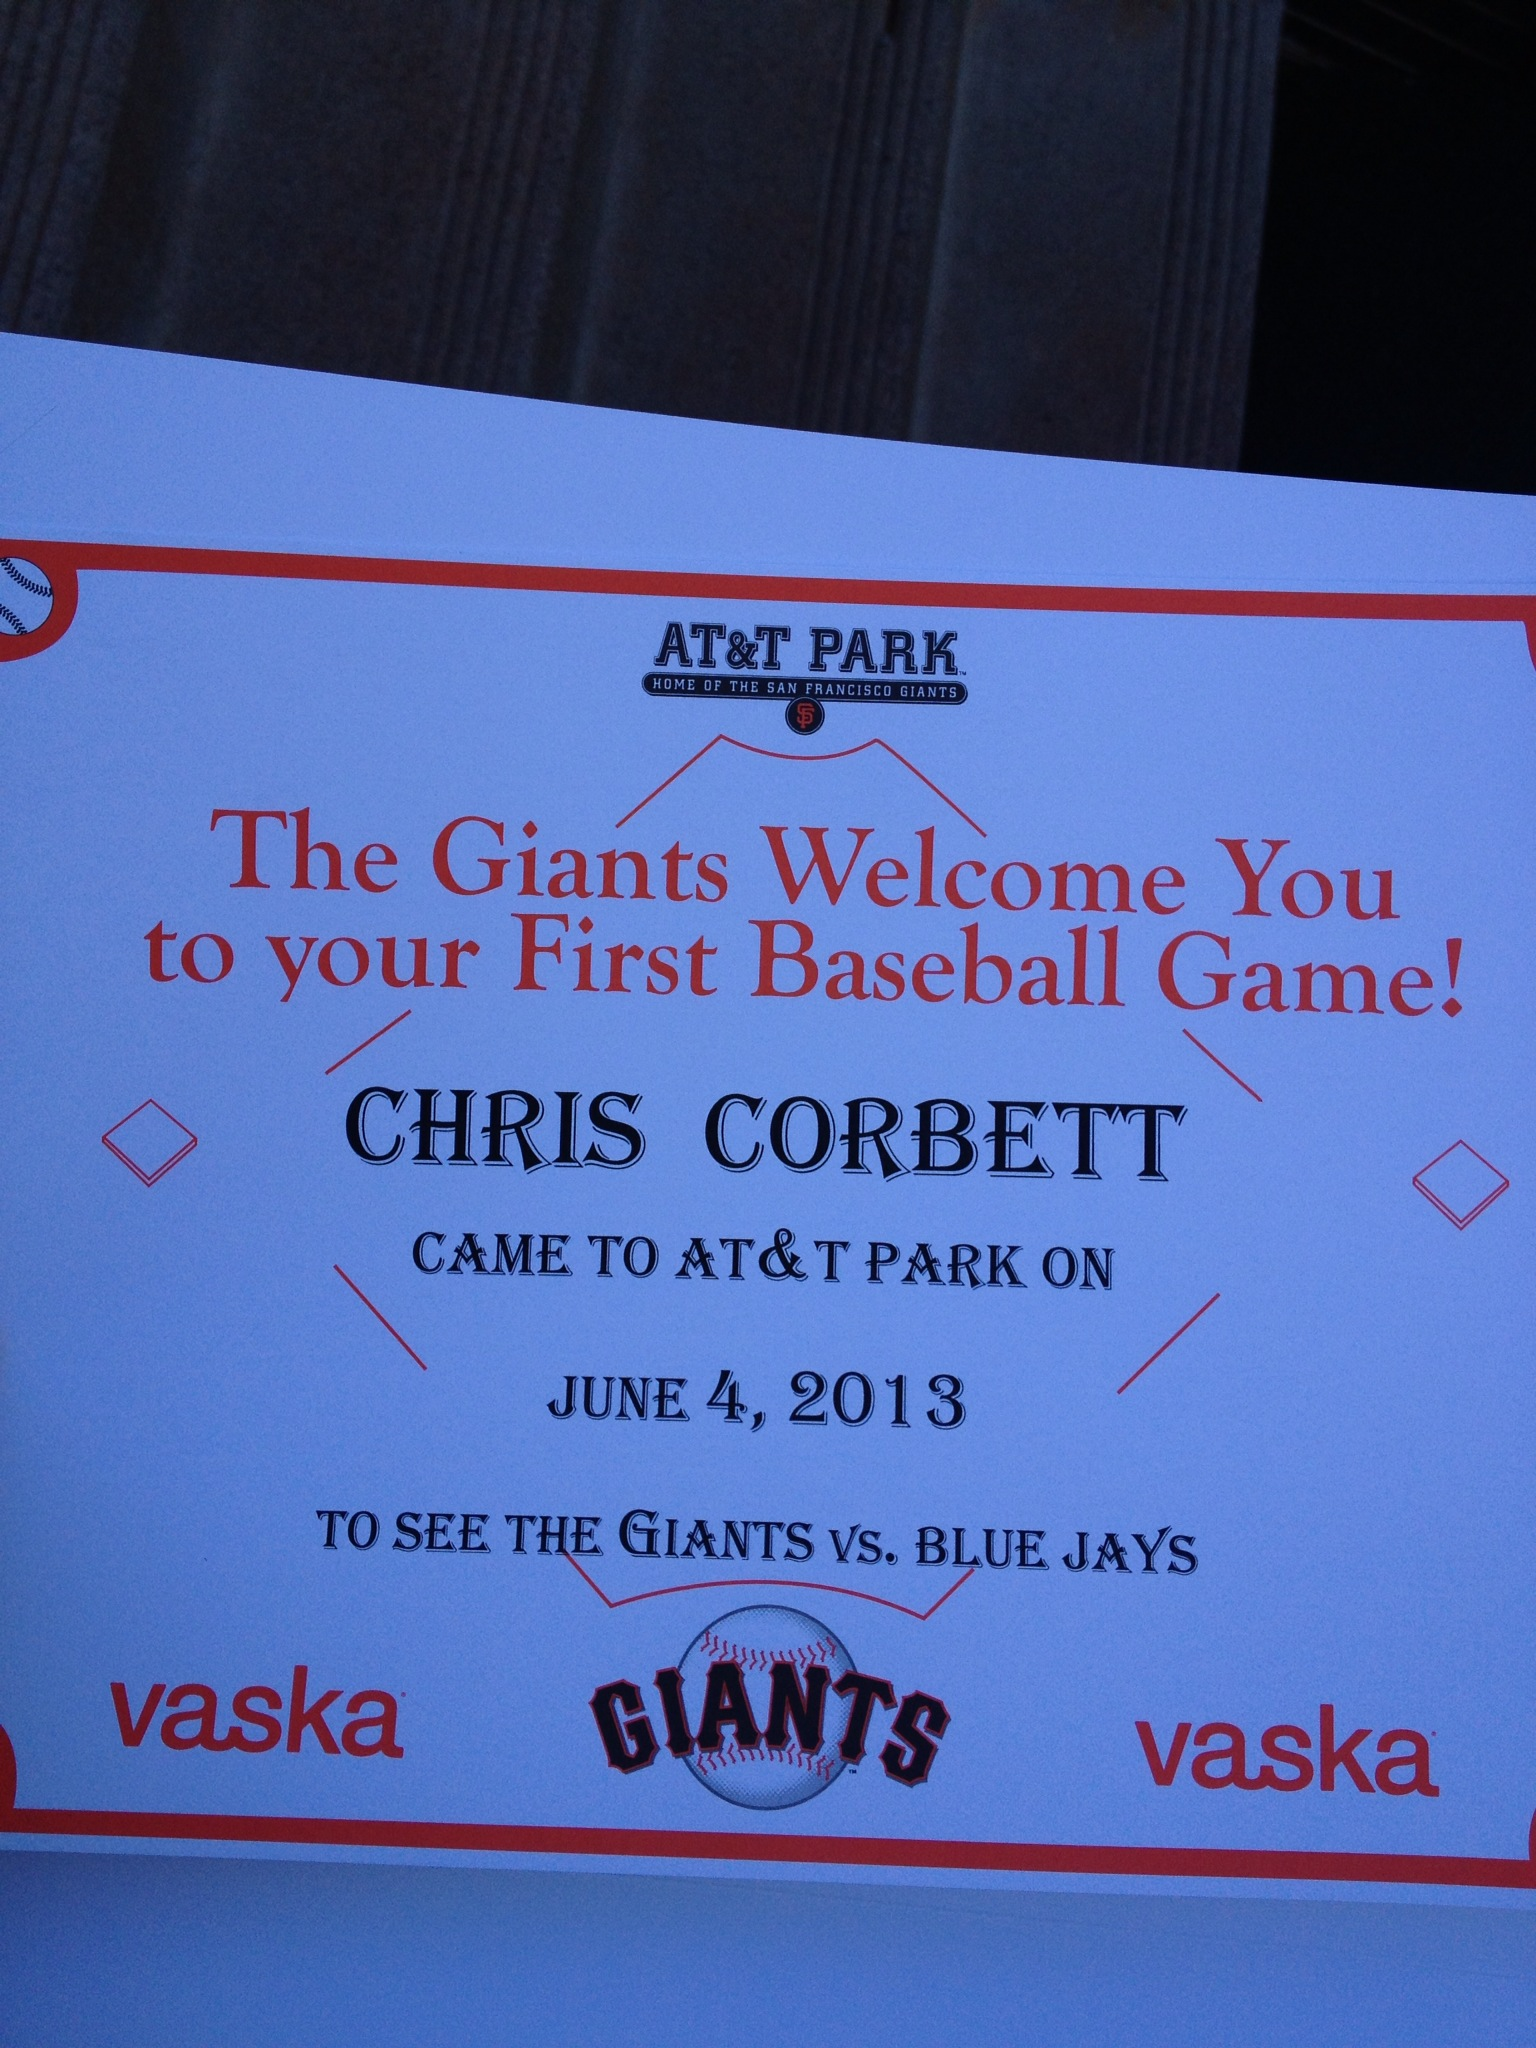 Certificate for first time visitors to AT&T Park